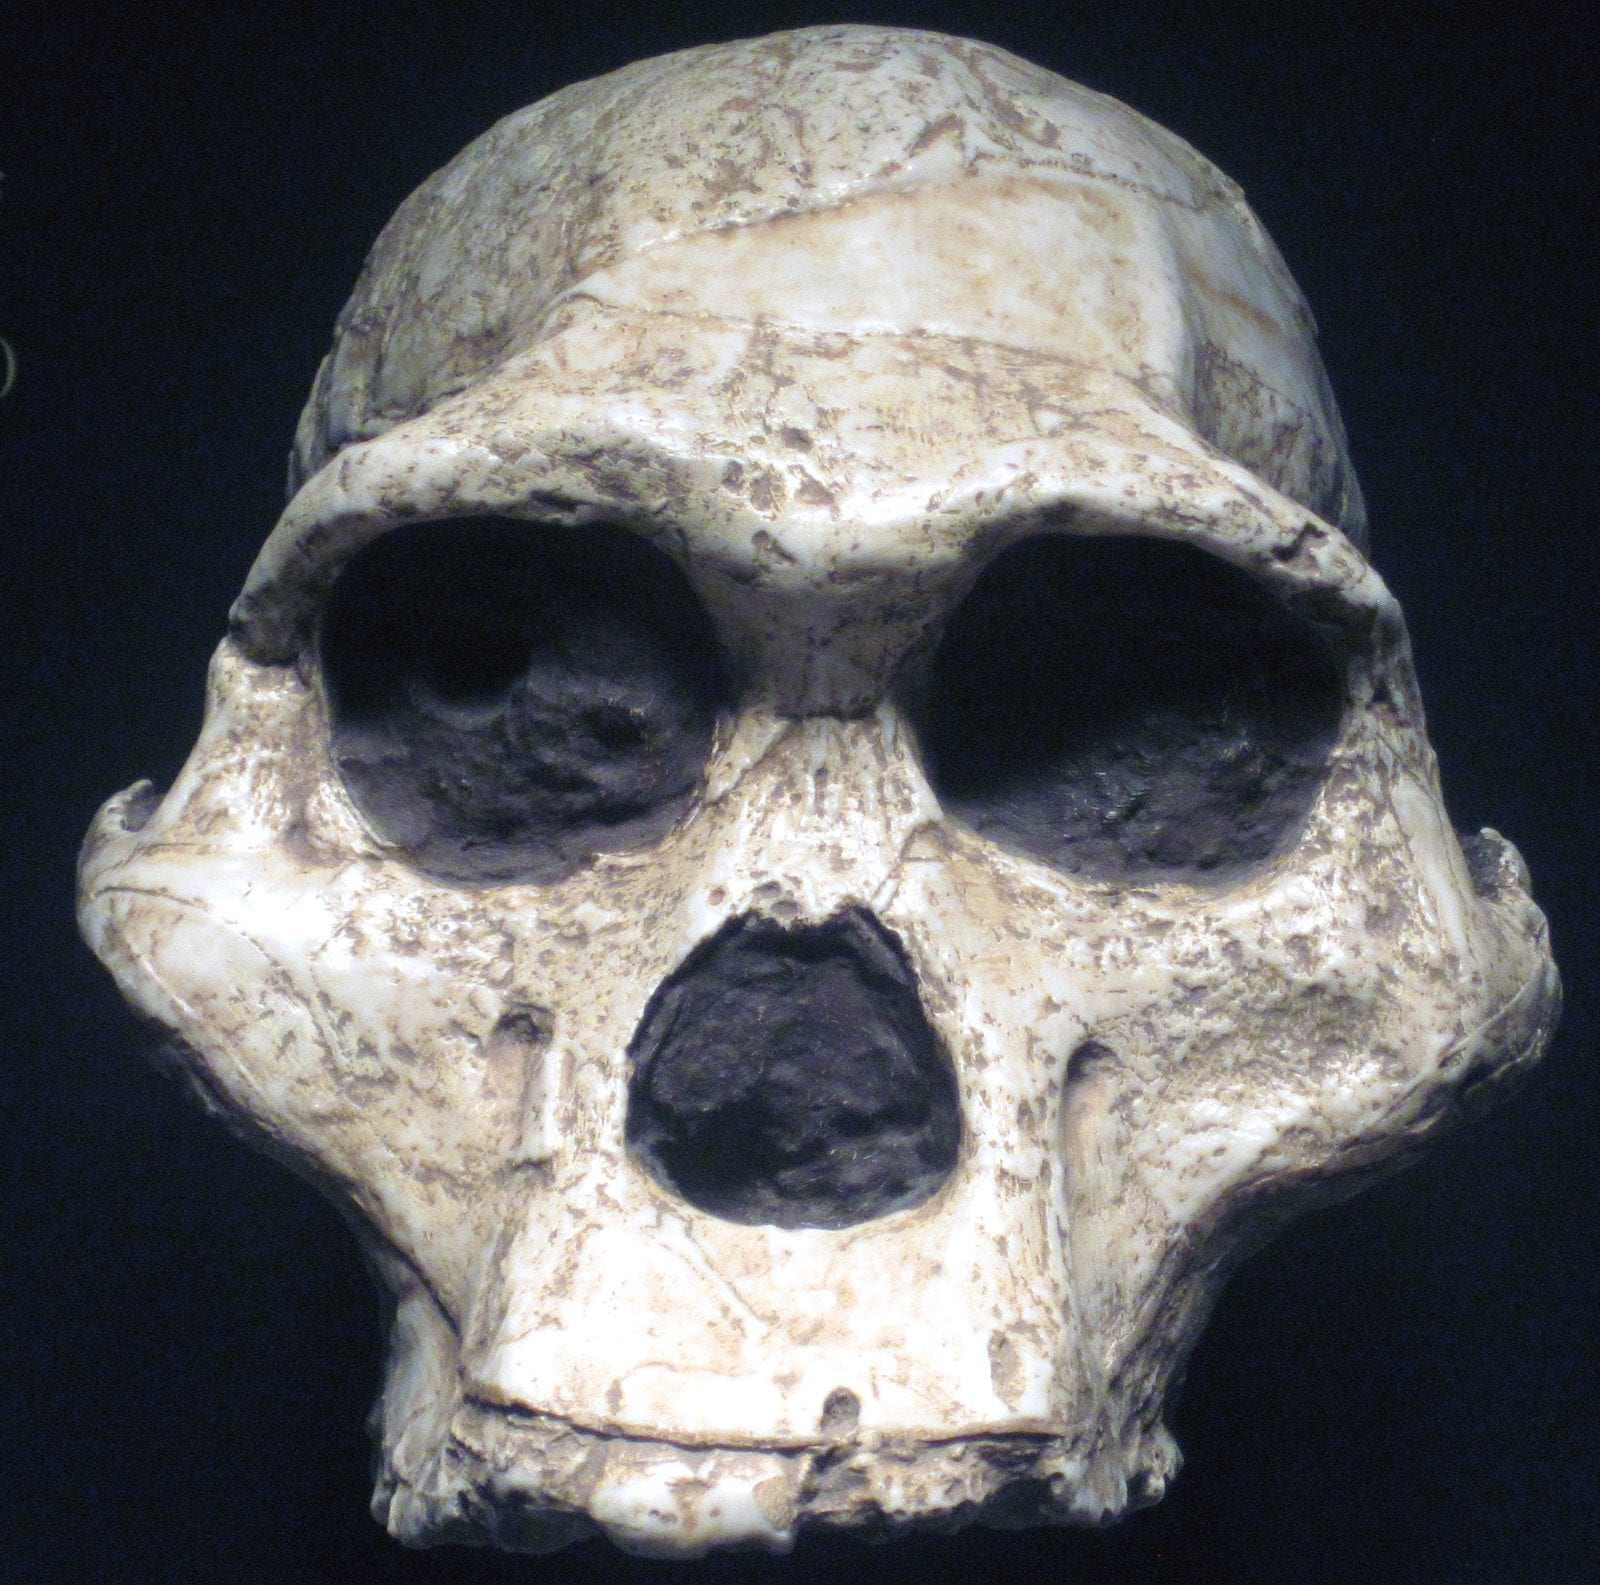 Sterkfontein collection, Transvaal Museum, Pretoria, South Africa